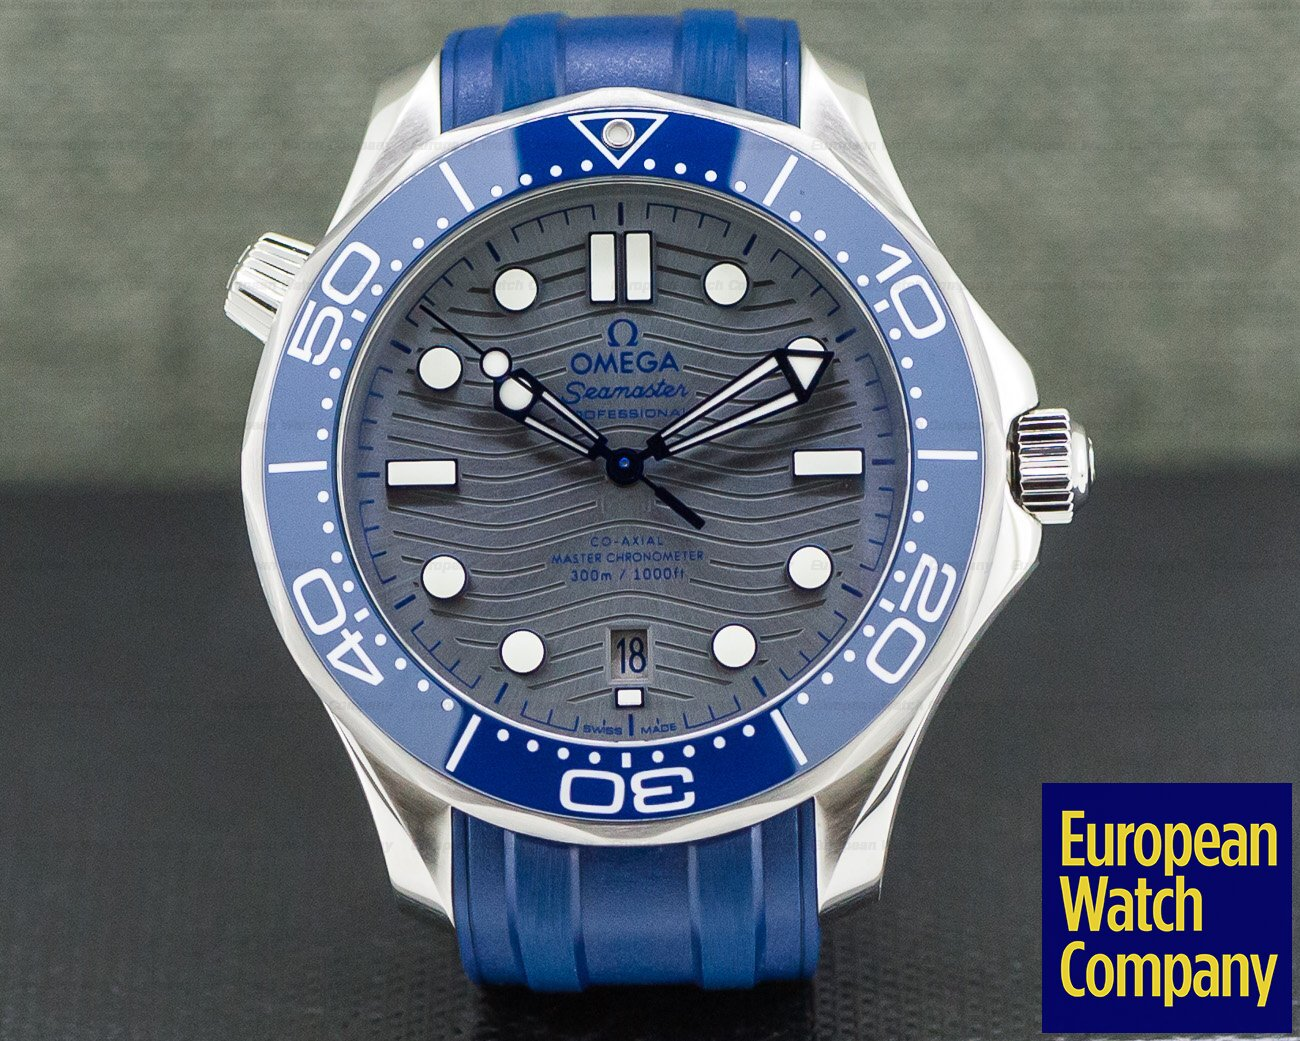 Omega 210.32.42.20.06.001 Seamaster Diver 300M Co-Axial Master Chronometer 42MM